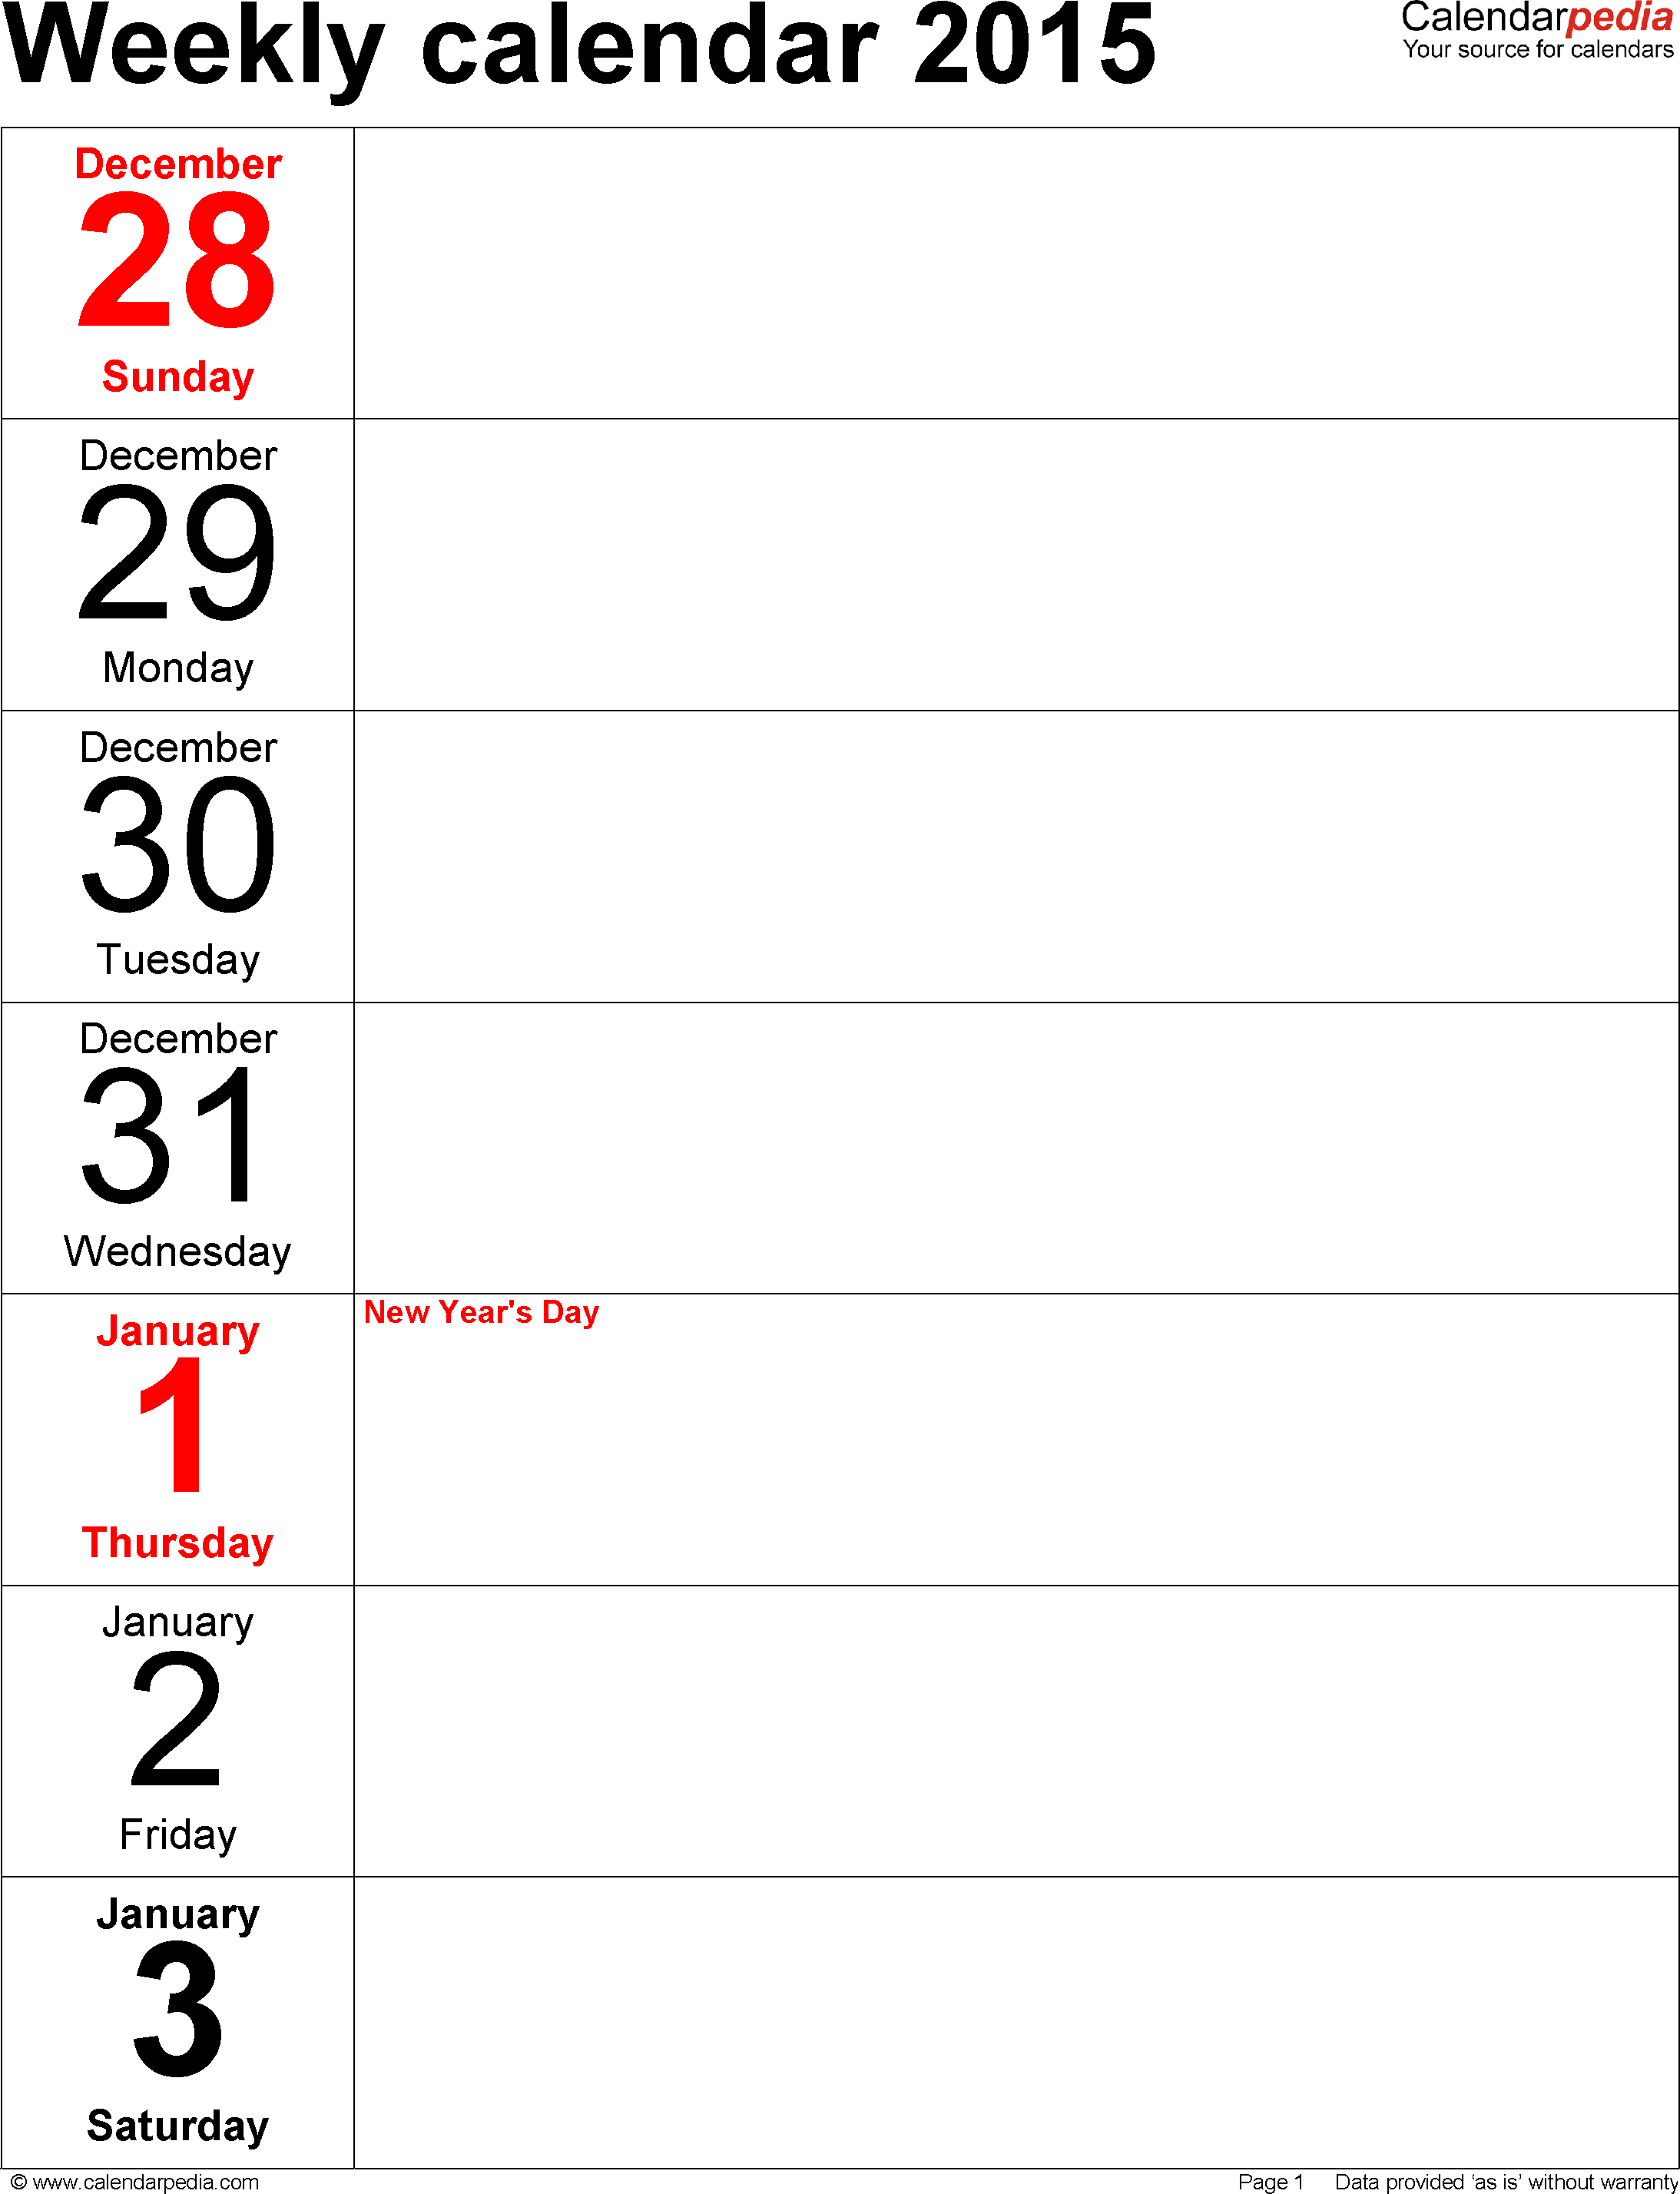 Weekly calendar 2015: template for Excel version 10, portrait, 53 pages, days vertically, great for a weekly diary